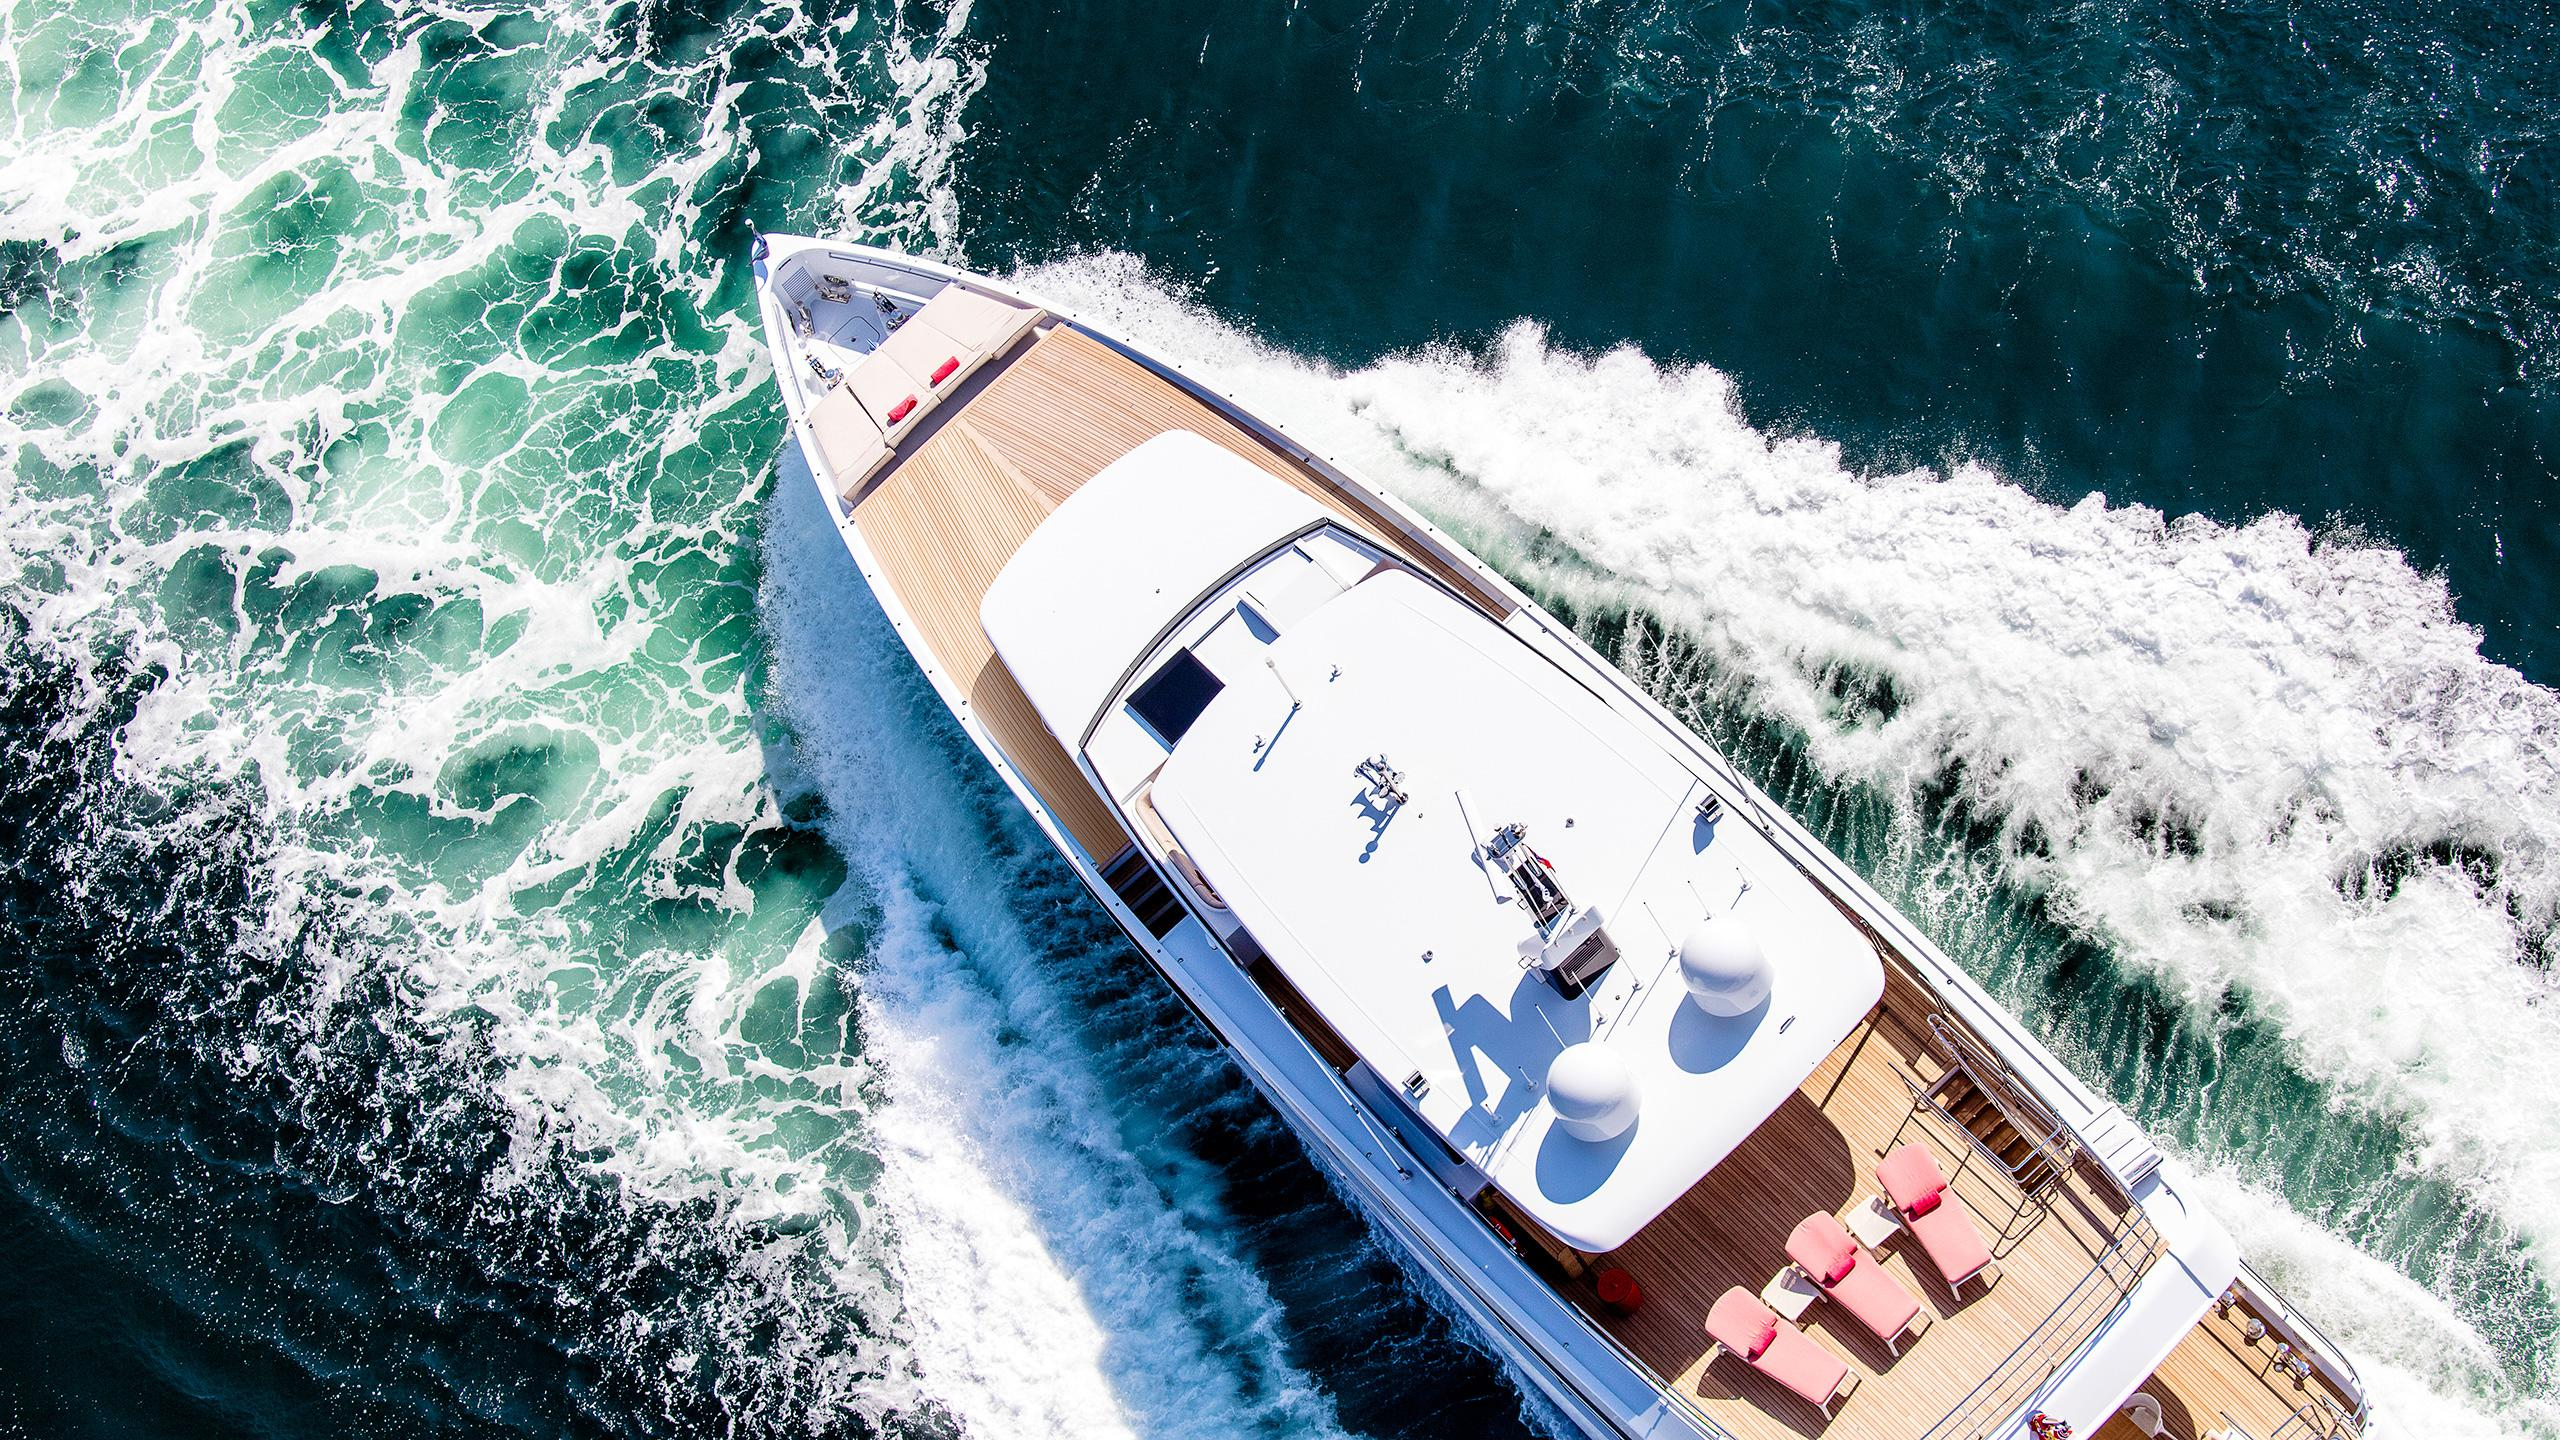 moon-sand-too-super-yacht-feadship-2016-34-metre-aerial-view